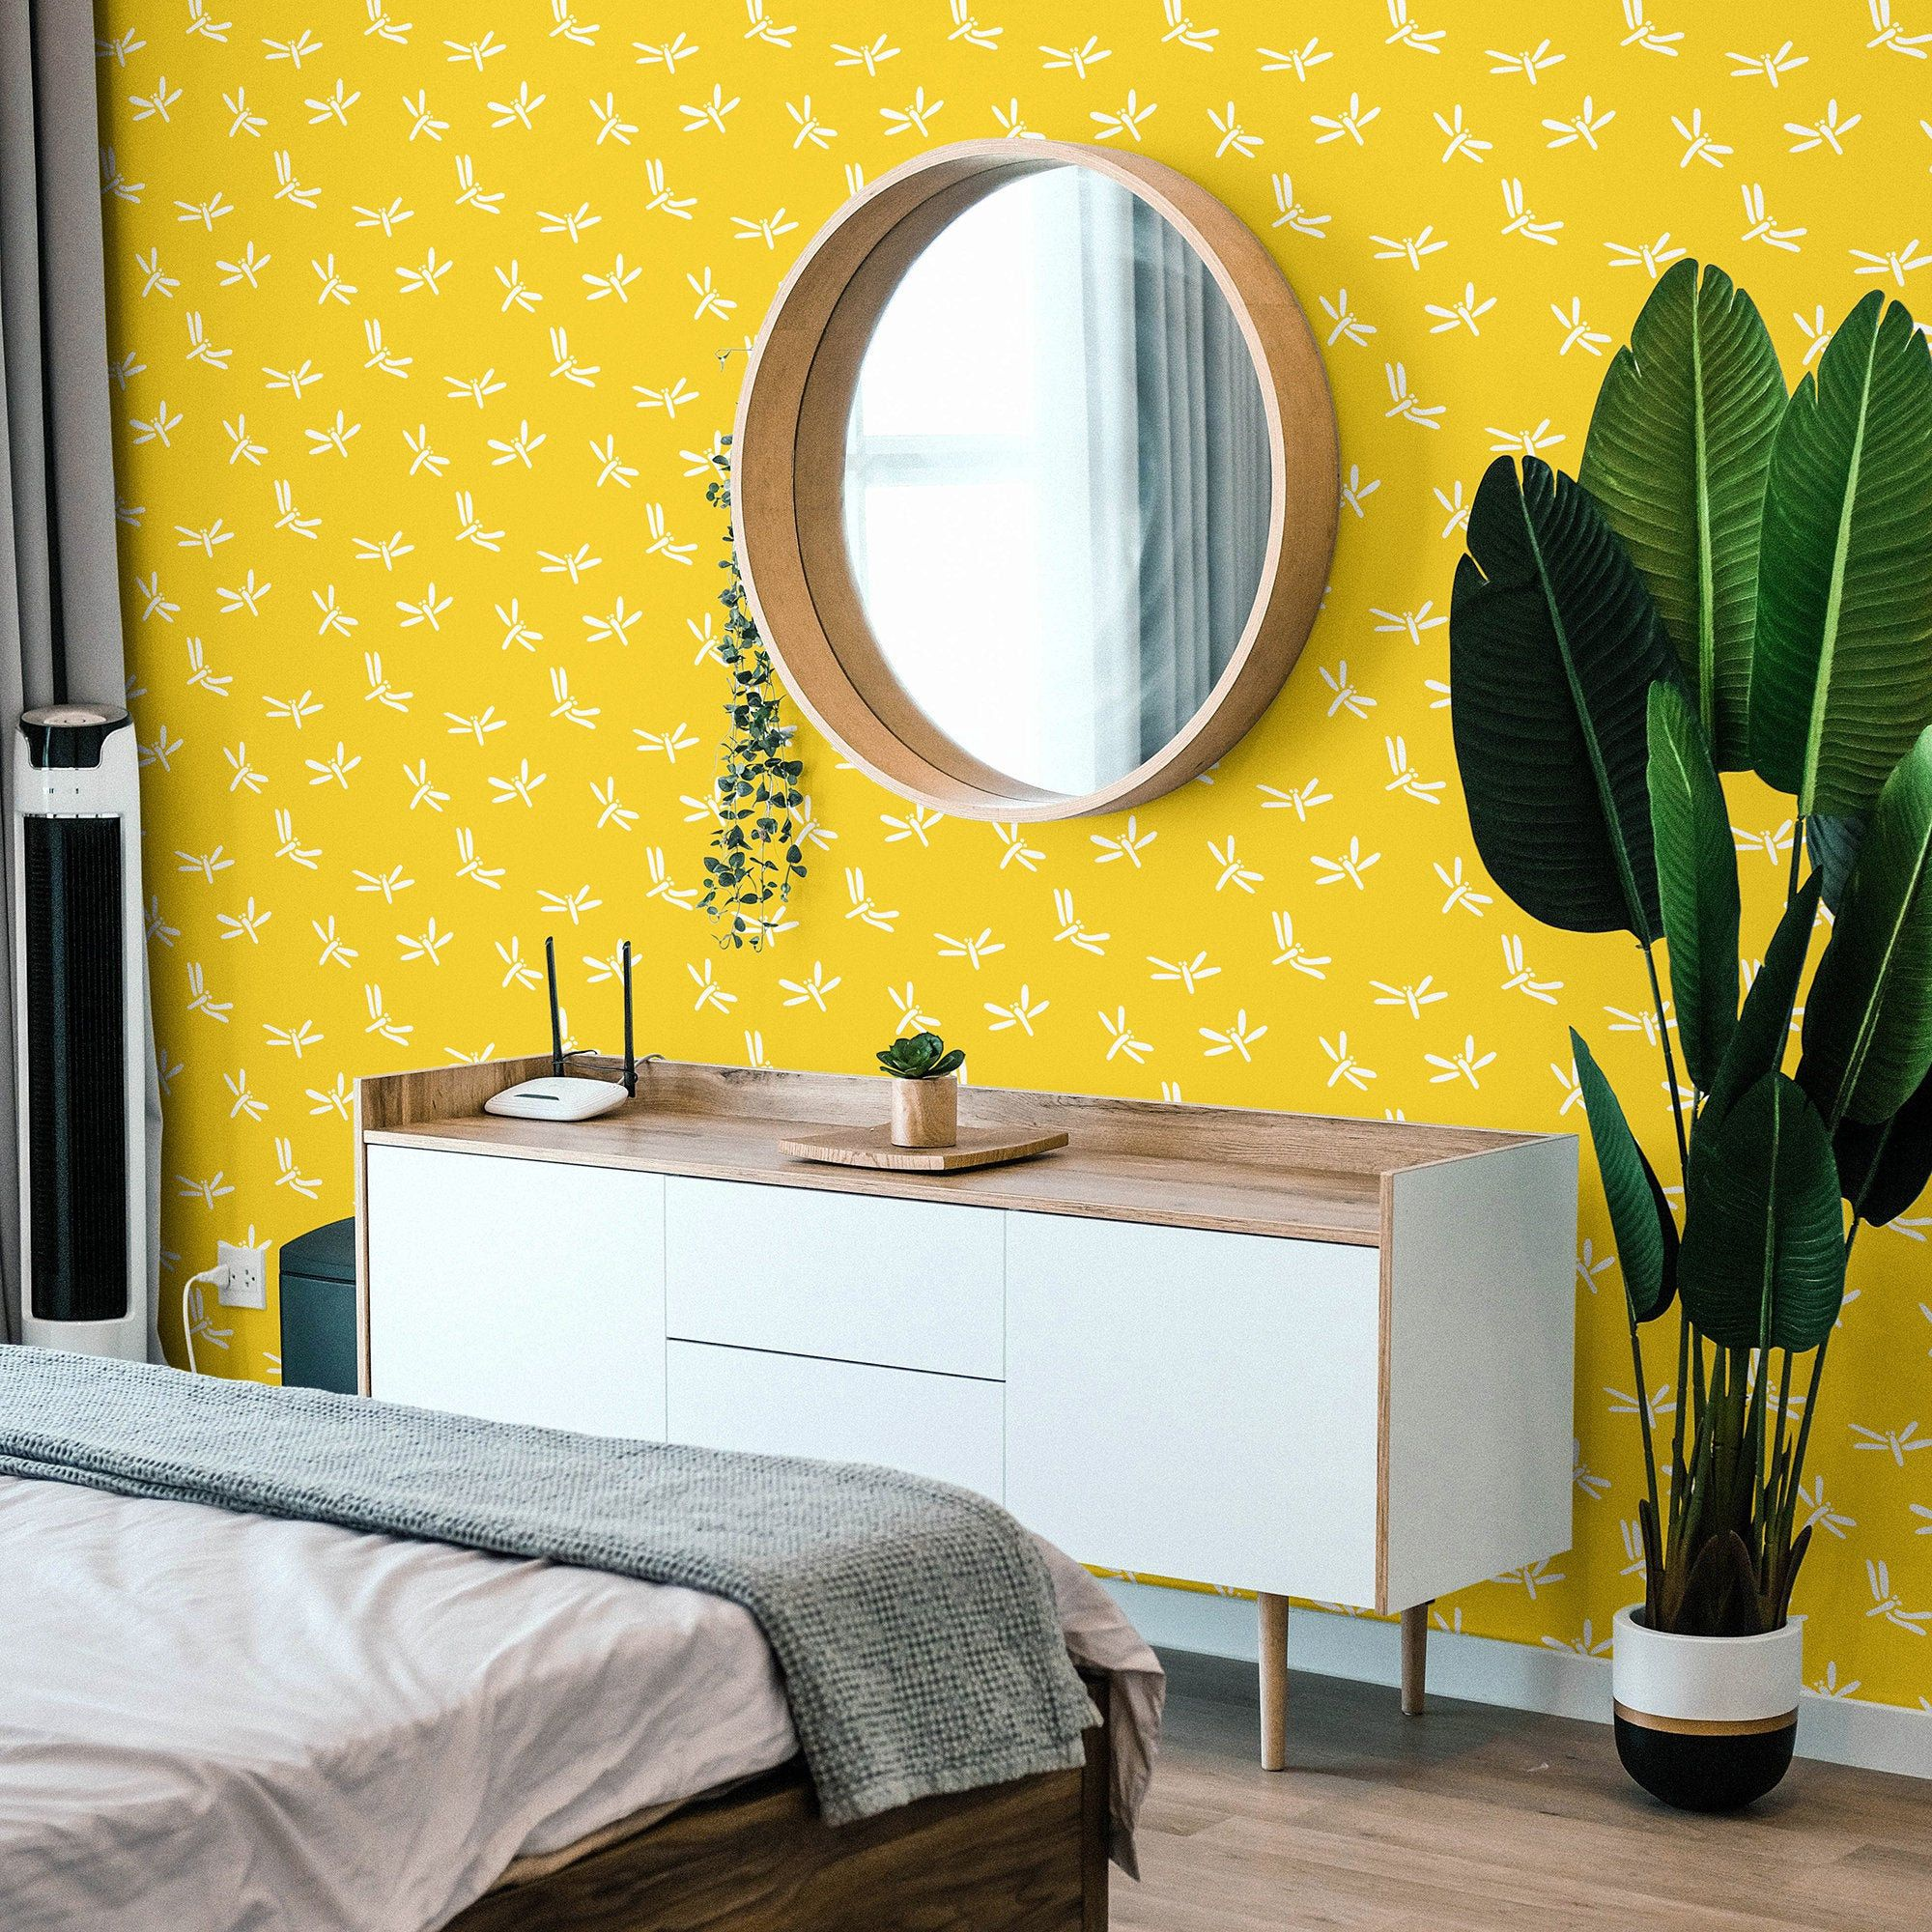 Yellow Dragonfly Wallpaper Peel And Stick Bright Self Etsy Dragonfly Wallpaper How To Install Wallpaper Room Makeover